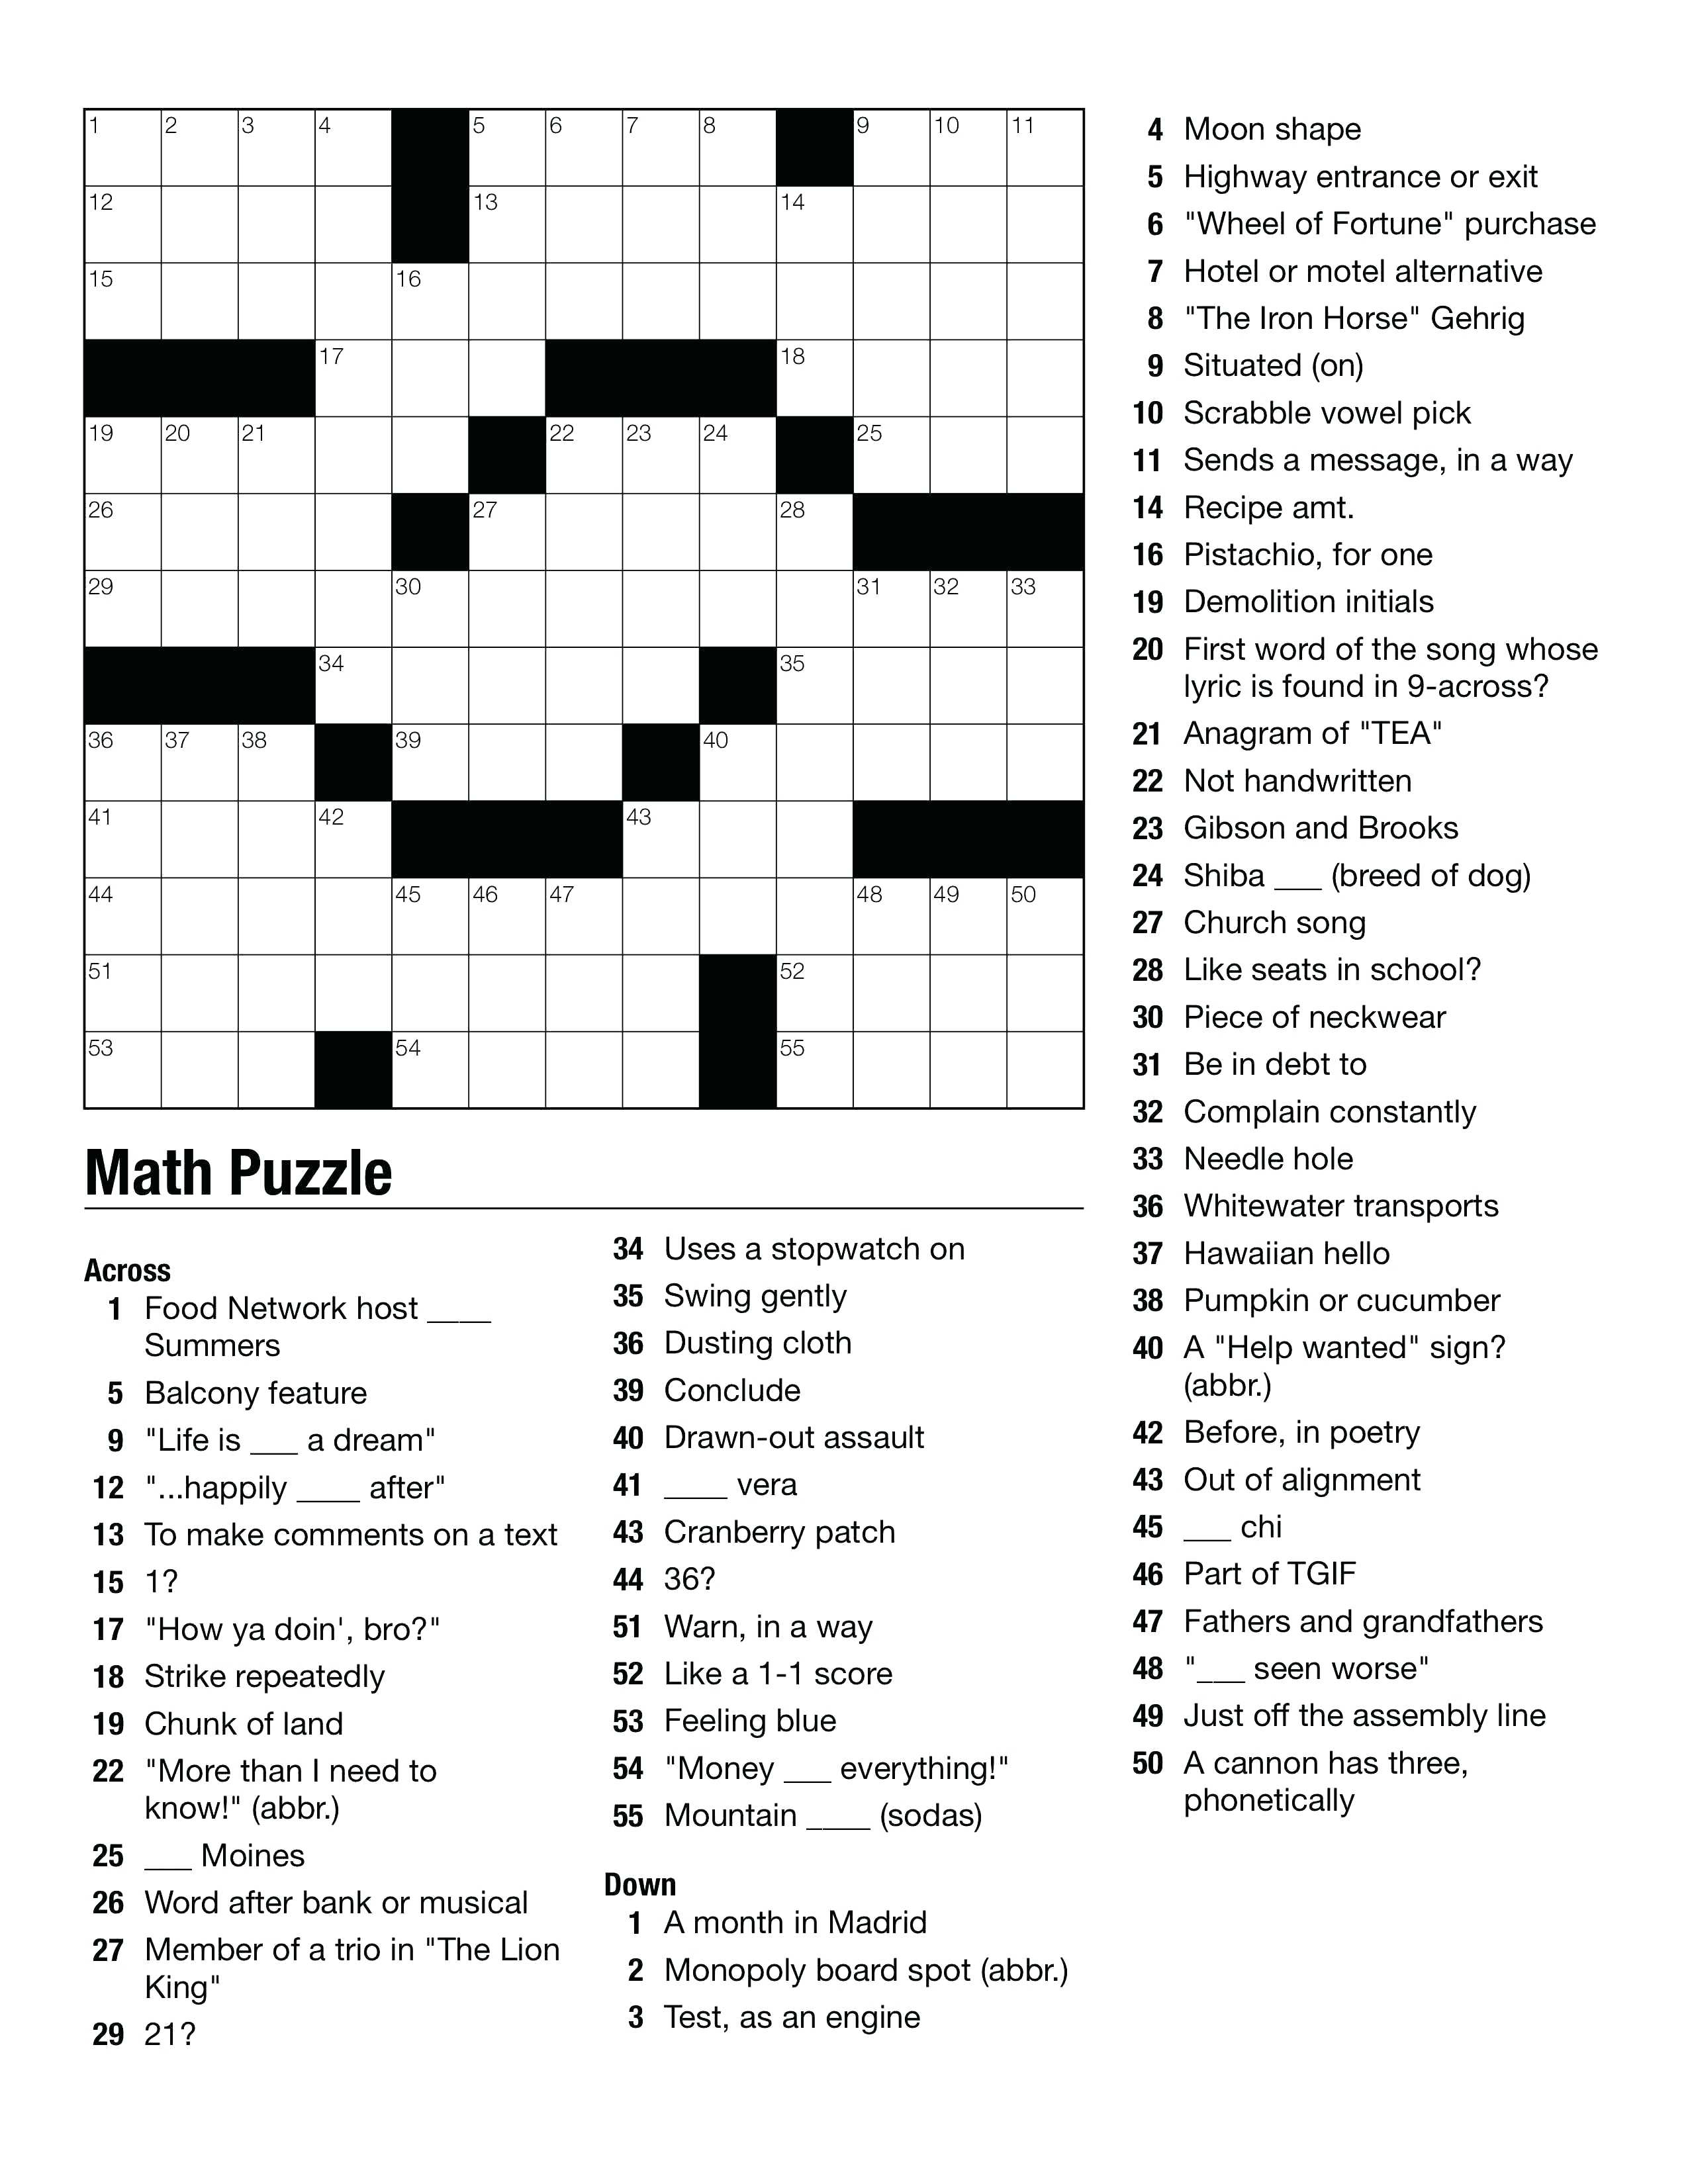 Geometry Puzzles Math Geometry Images Teaching Ideas On Crossword - Printable Crossword Puzzles For Middle Schoolers